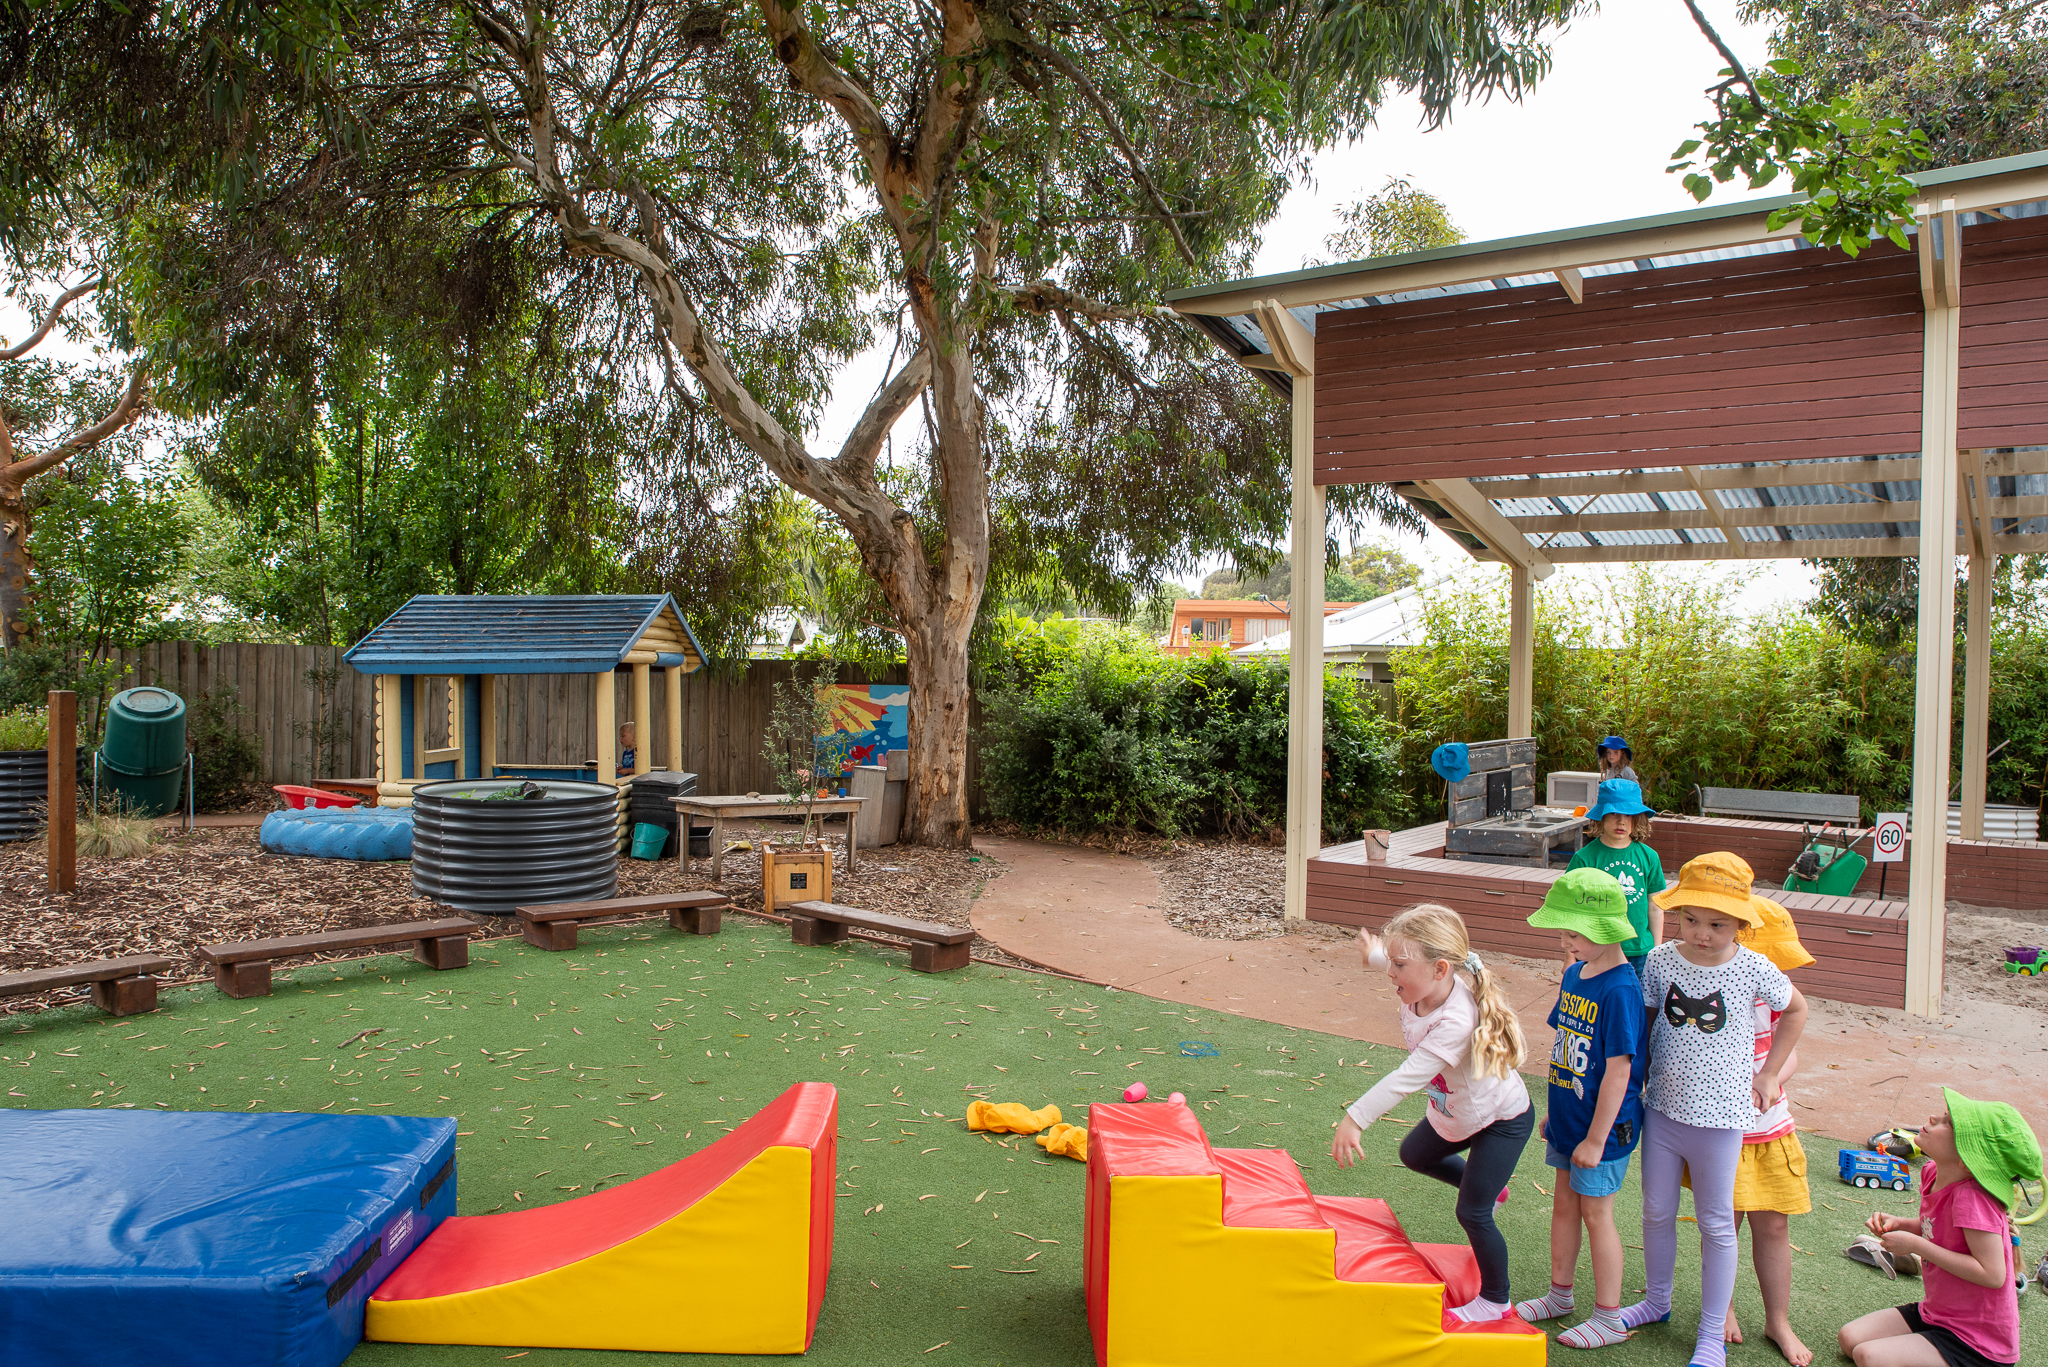 Woodlands-Kinder- after 3 backyard cubby now.jpg